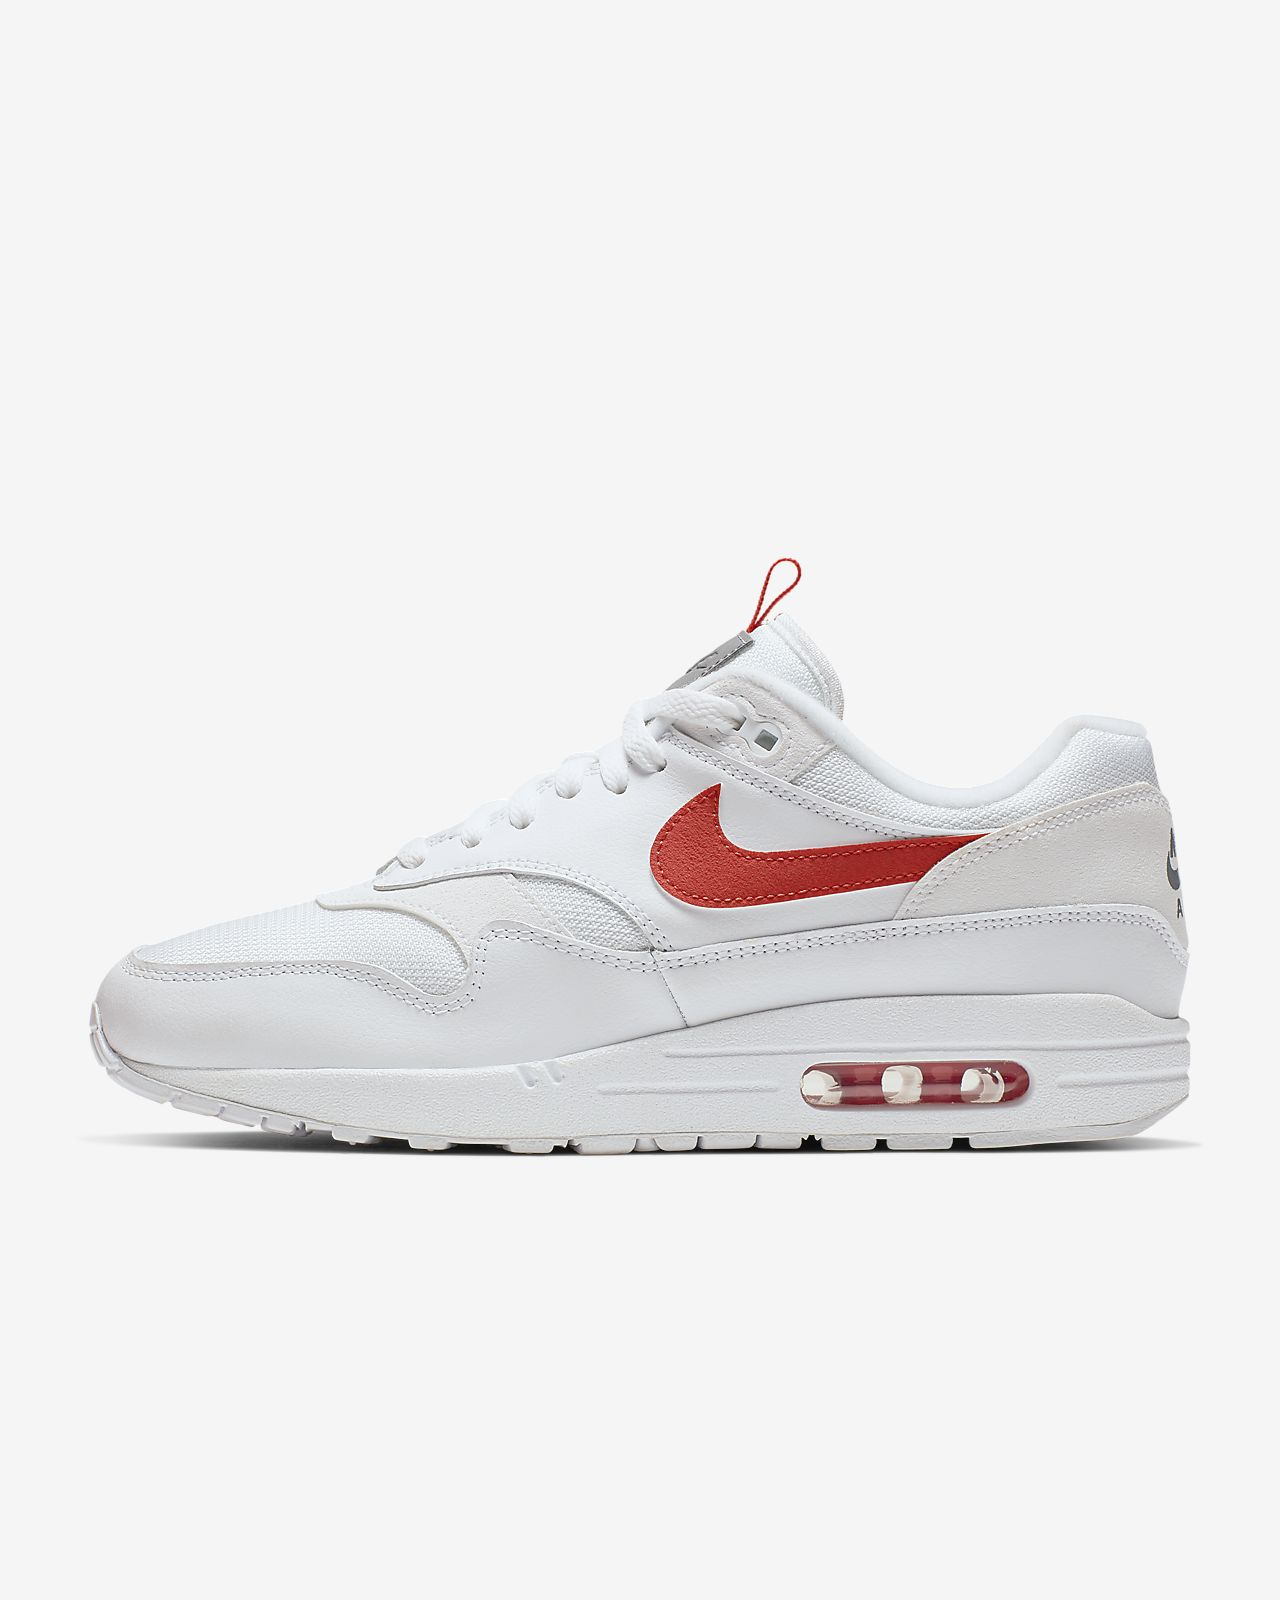 separation shoes 0aaef 73846 Nike Air Max 1 SE